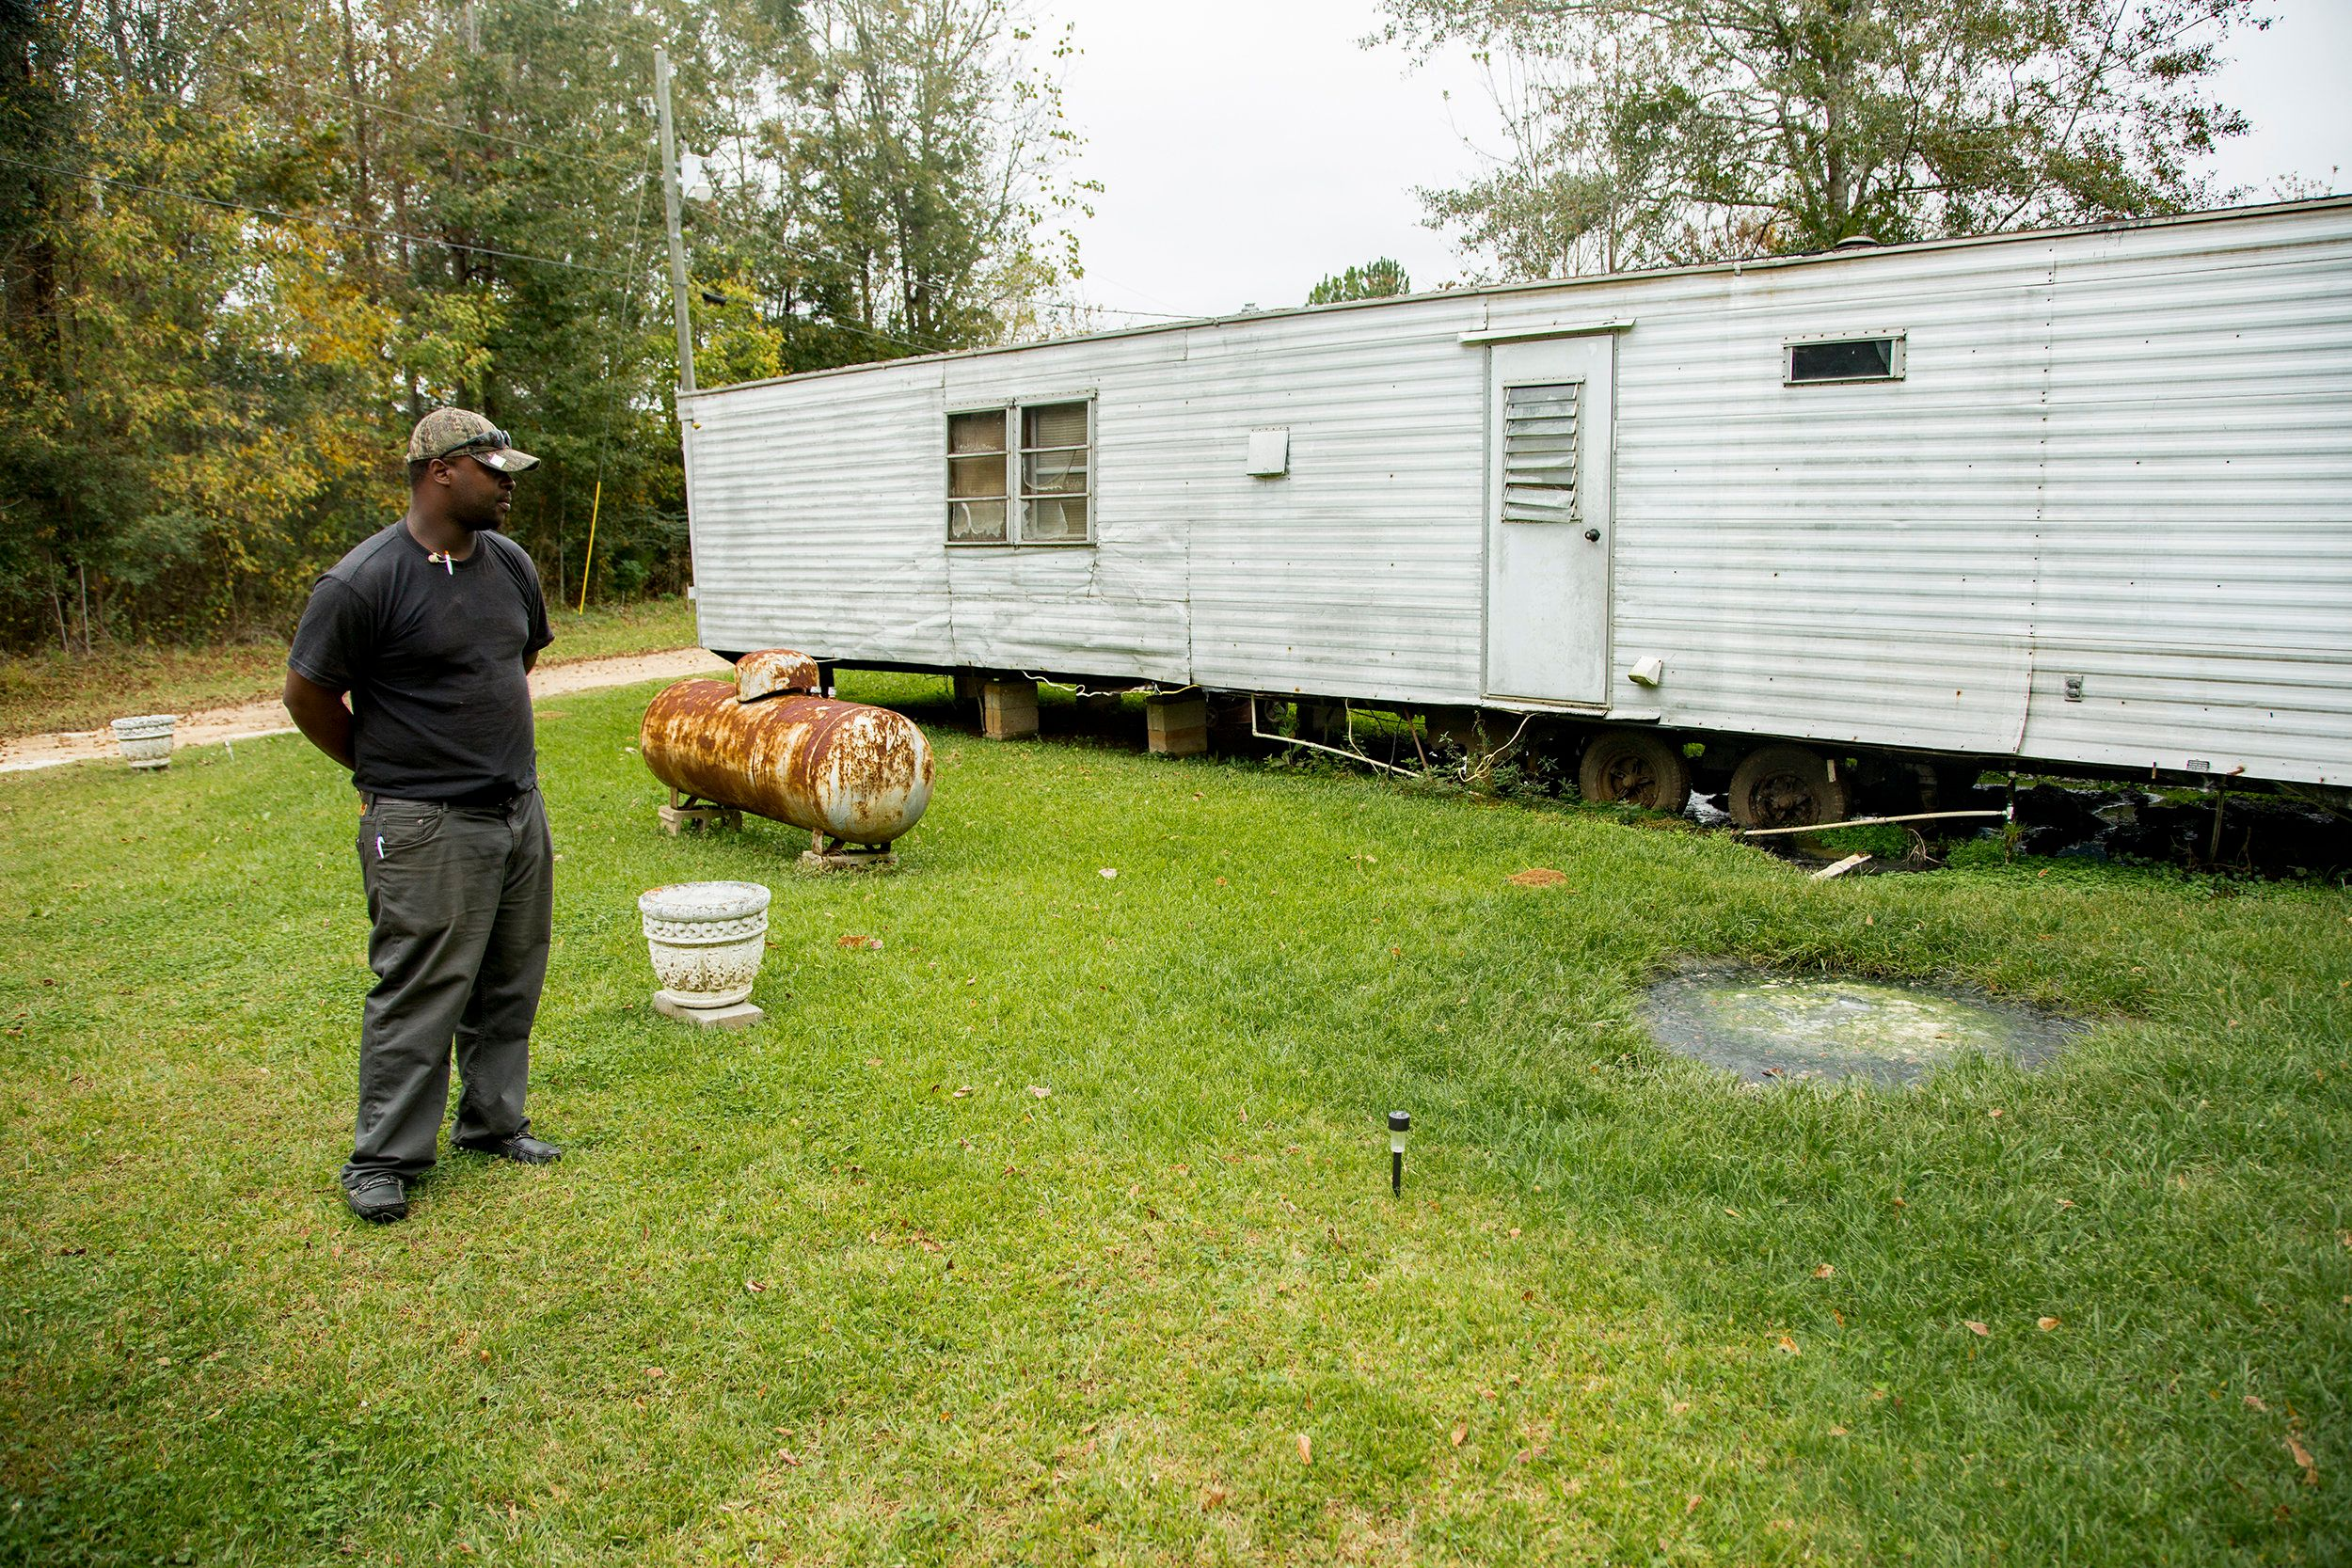 Community activist Aaron Thigpen examines raw waste pooling next to a mobile home.